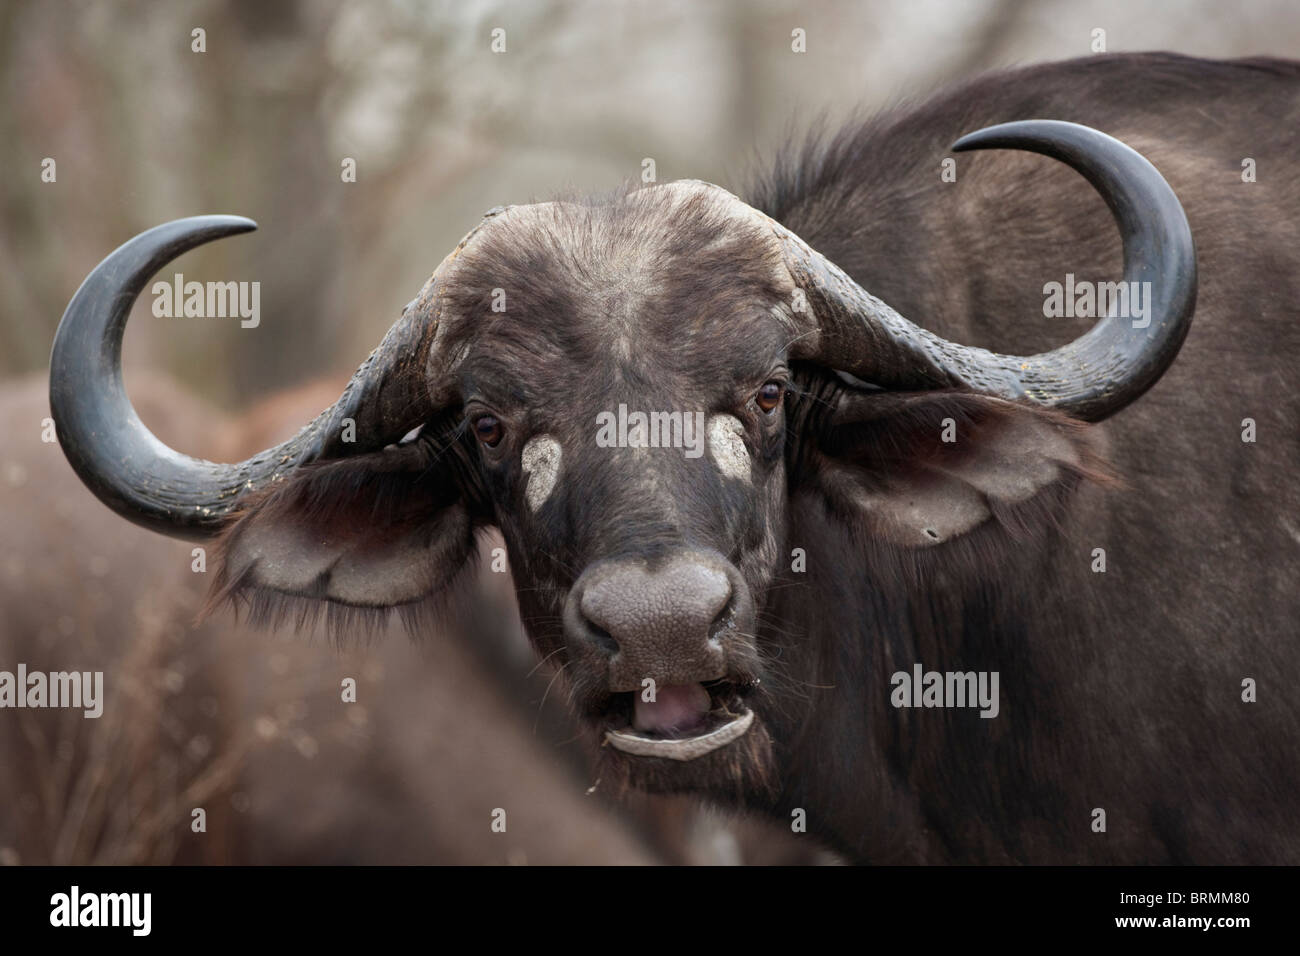 Frontal portrait of a female buffalo with its head tilted at an angle - Stock Image